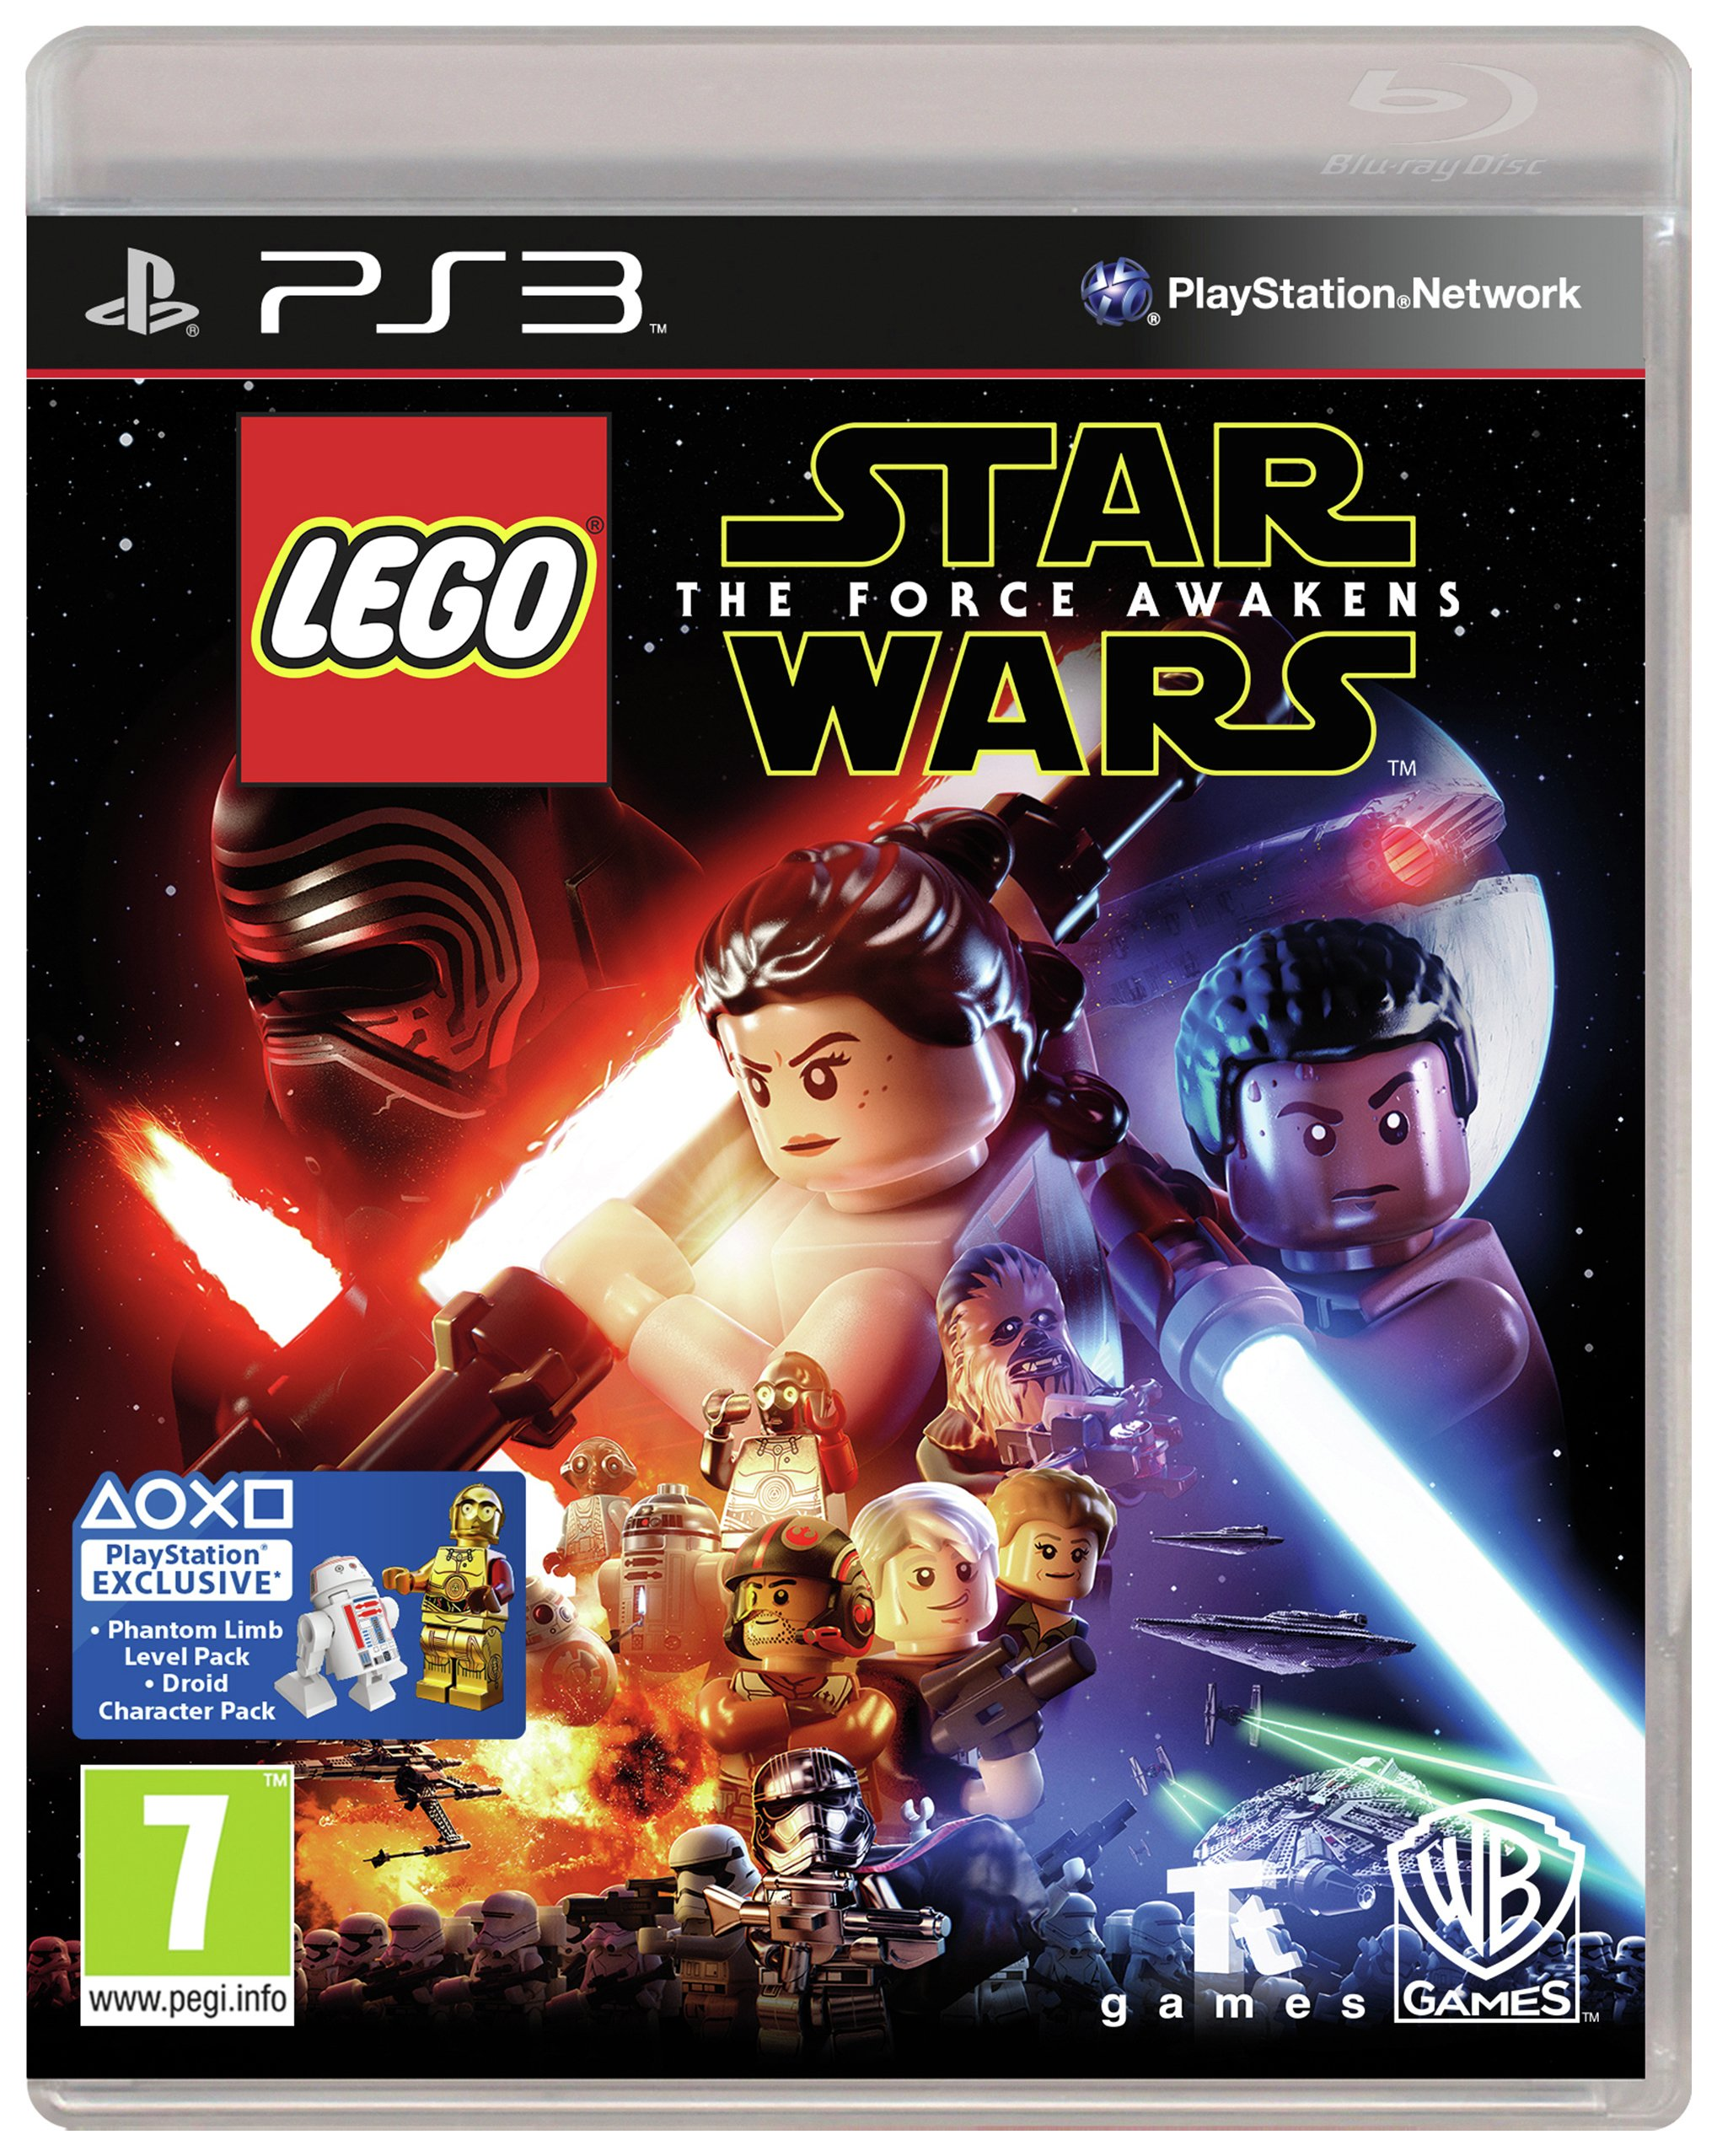 LEGO - Star Wars - The Force Awakens - PS3 Game